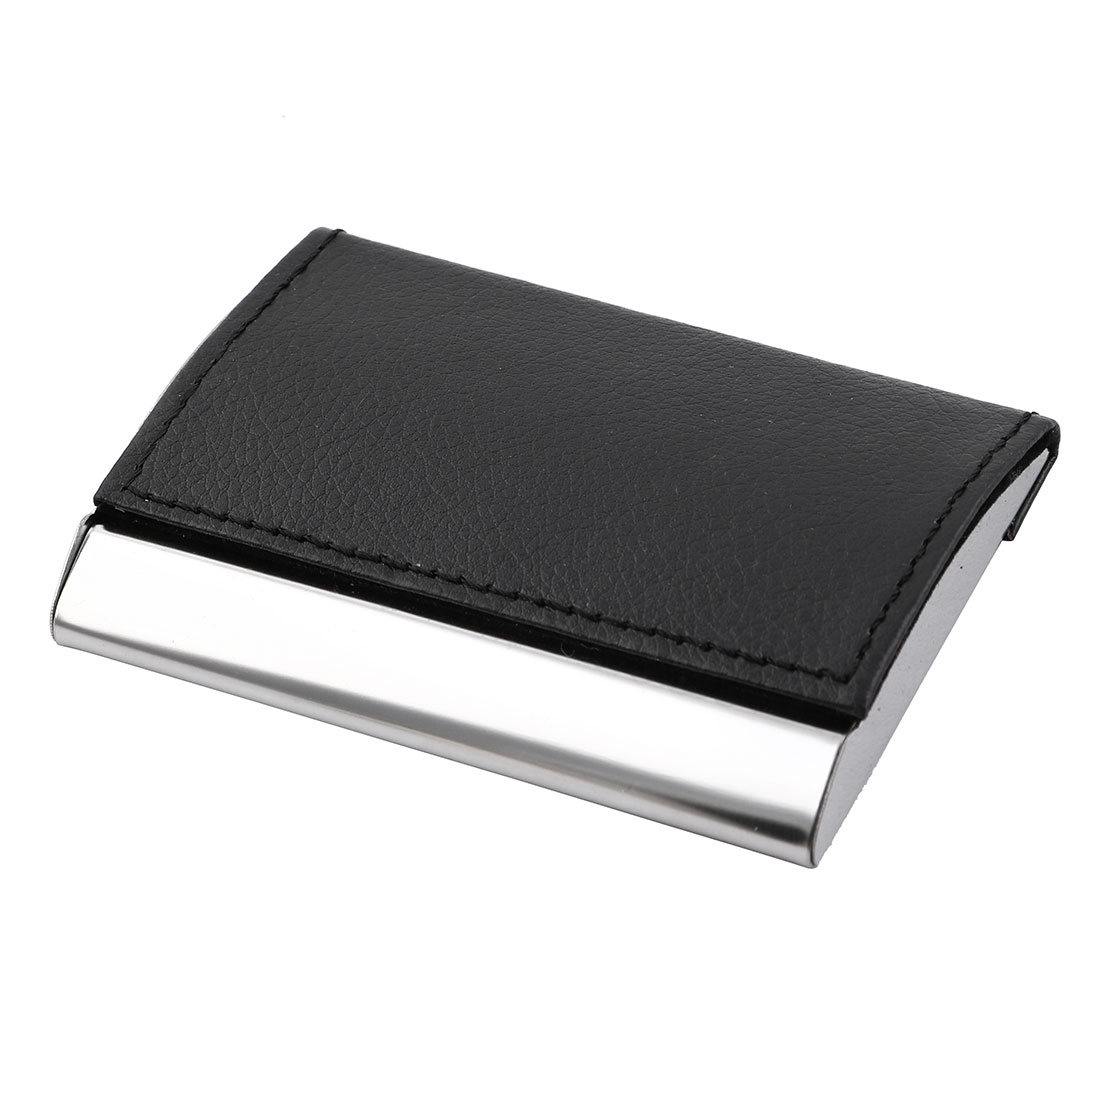 Black Leather Surface Metal Business Card Holder Case